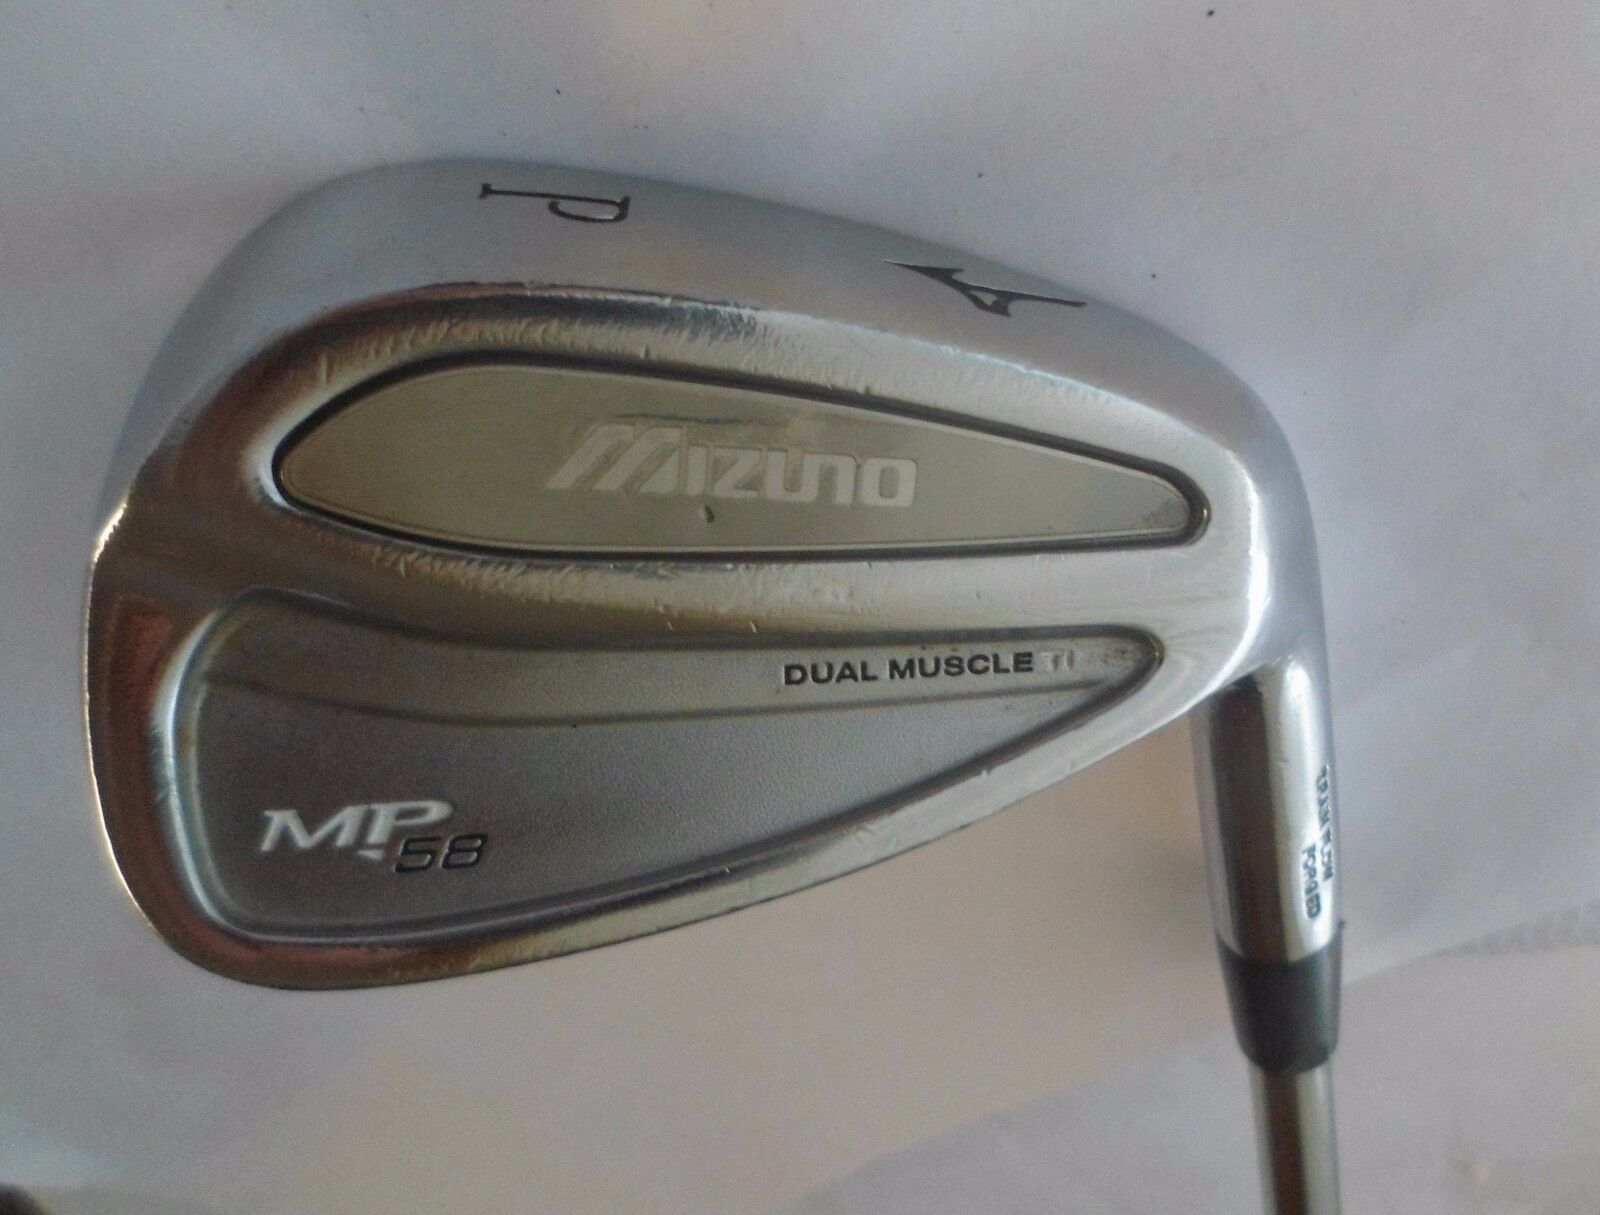 Mizuno doble  músculo TI MP-58 lanzamiento Wedge Regular Eje De Acero, empuñadura de Mizuno MP58  saludable